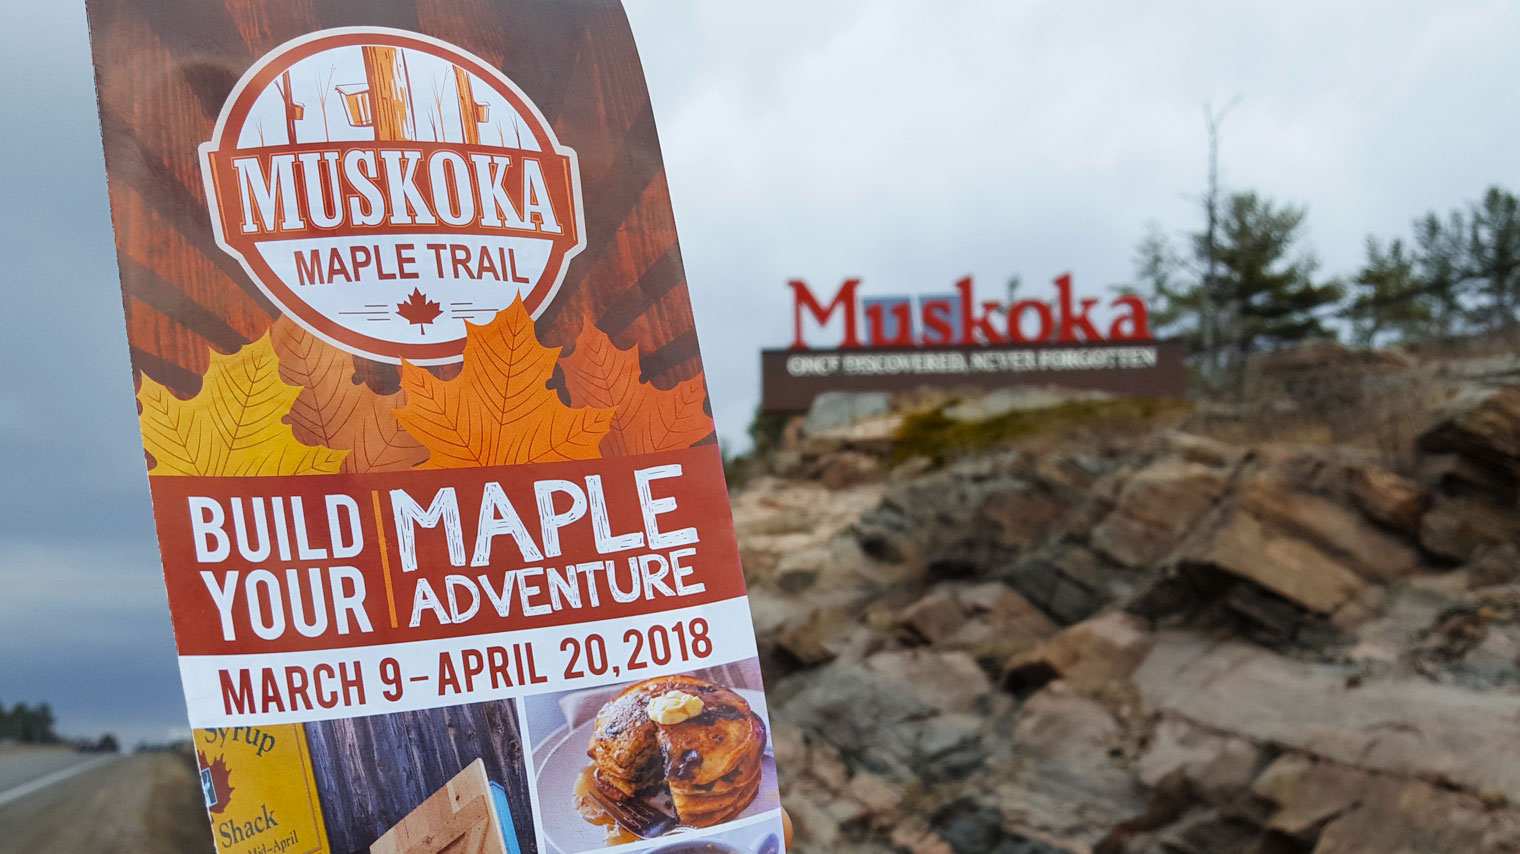 Muskoka Maple Trail Starts March 8